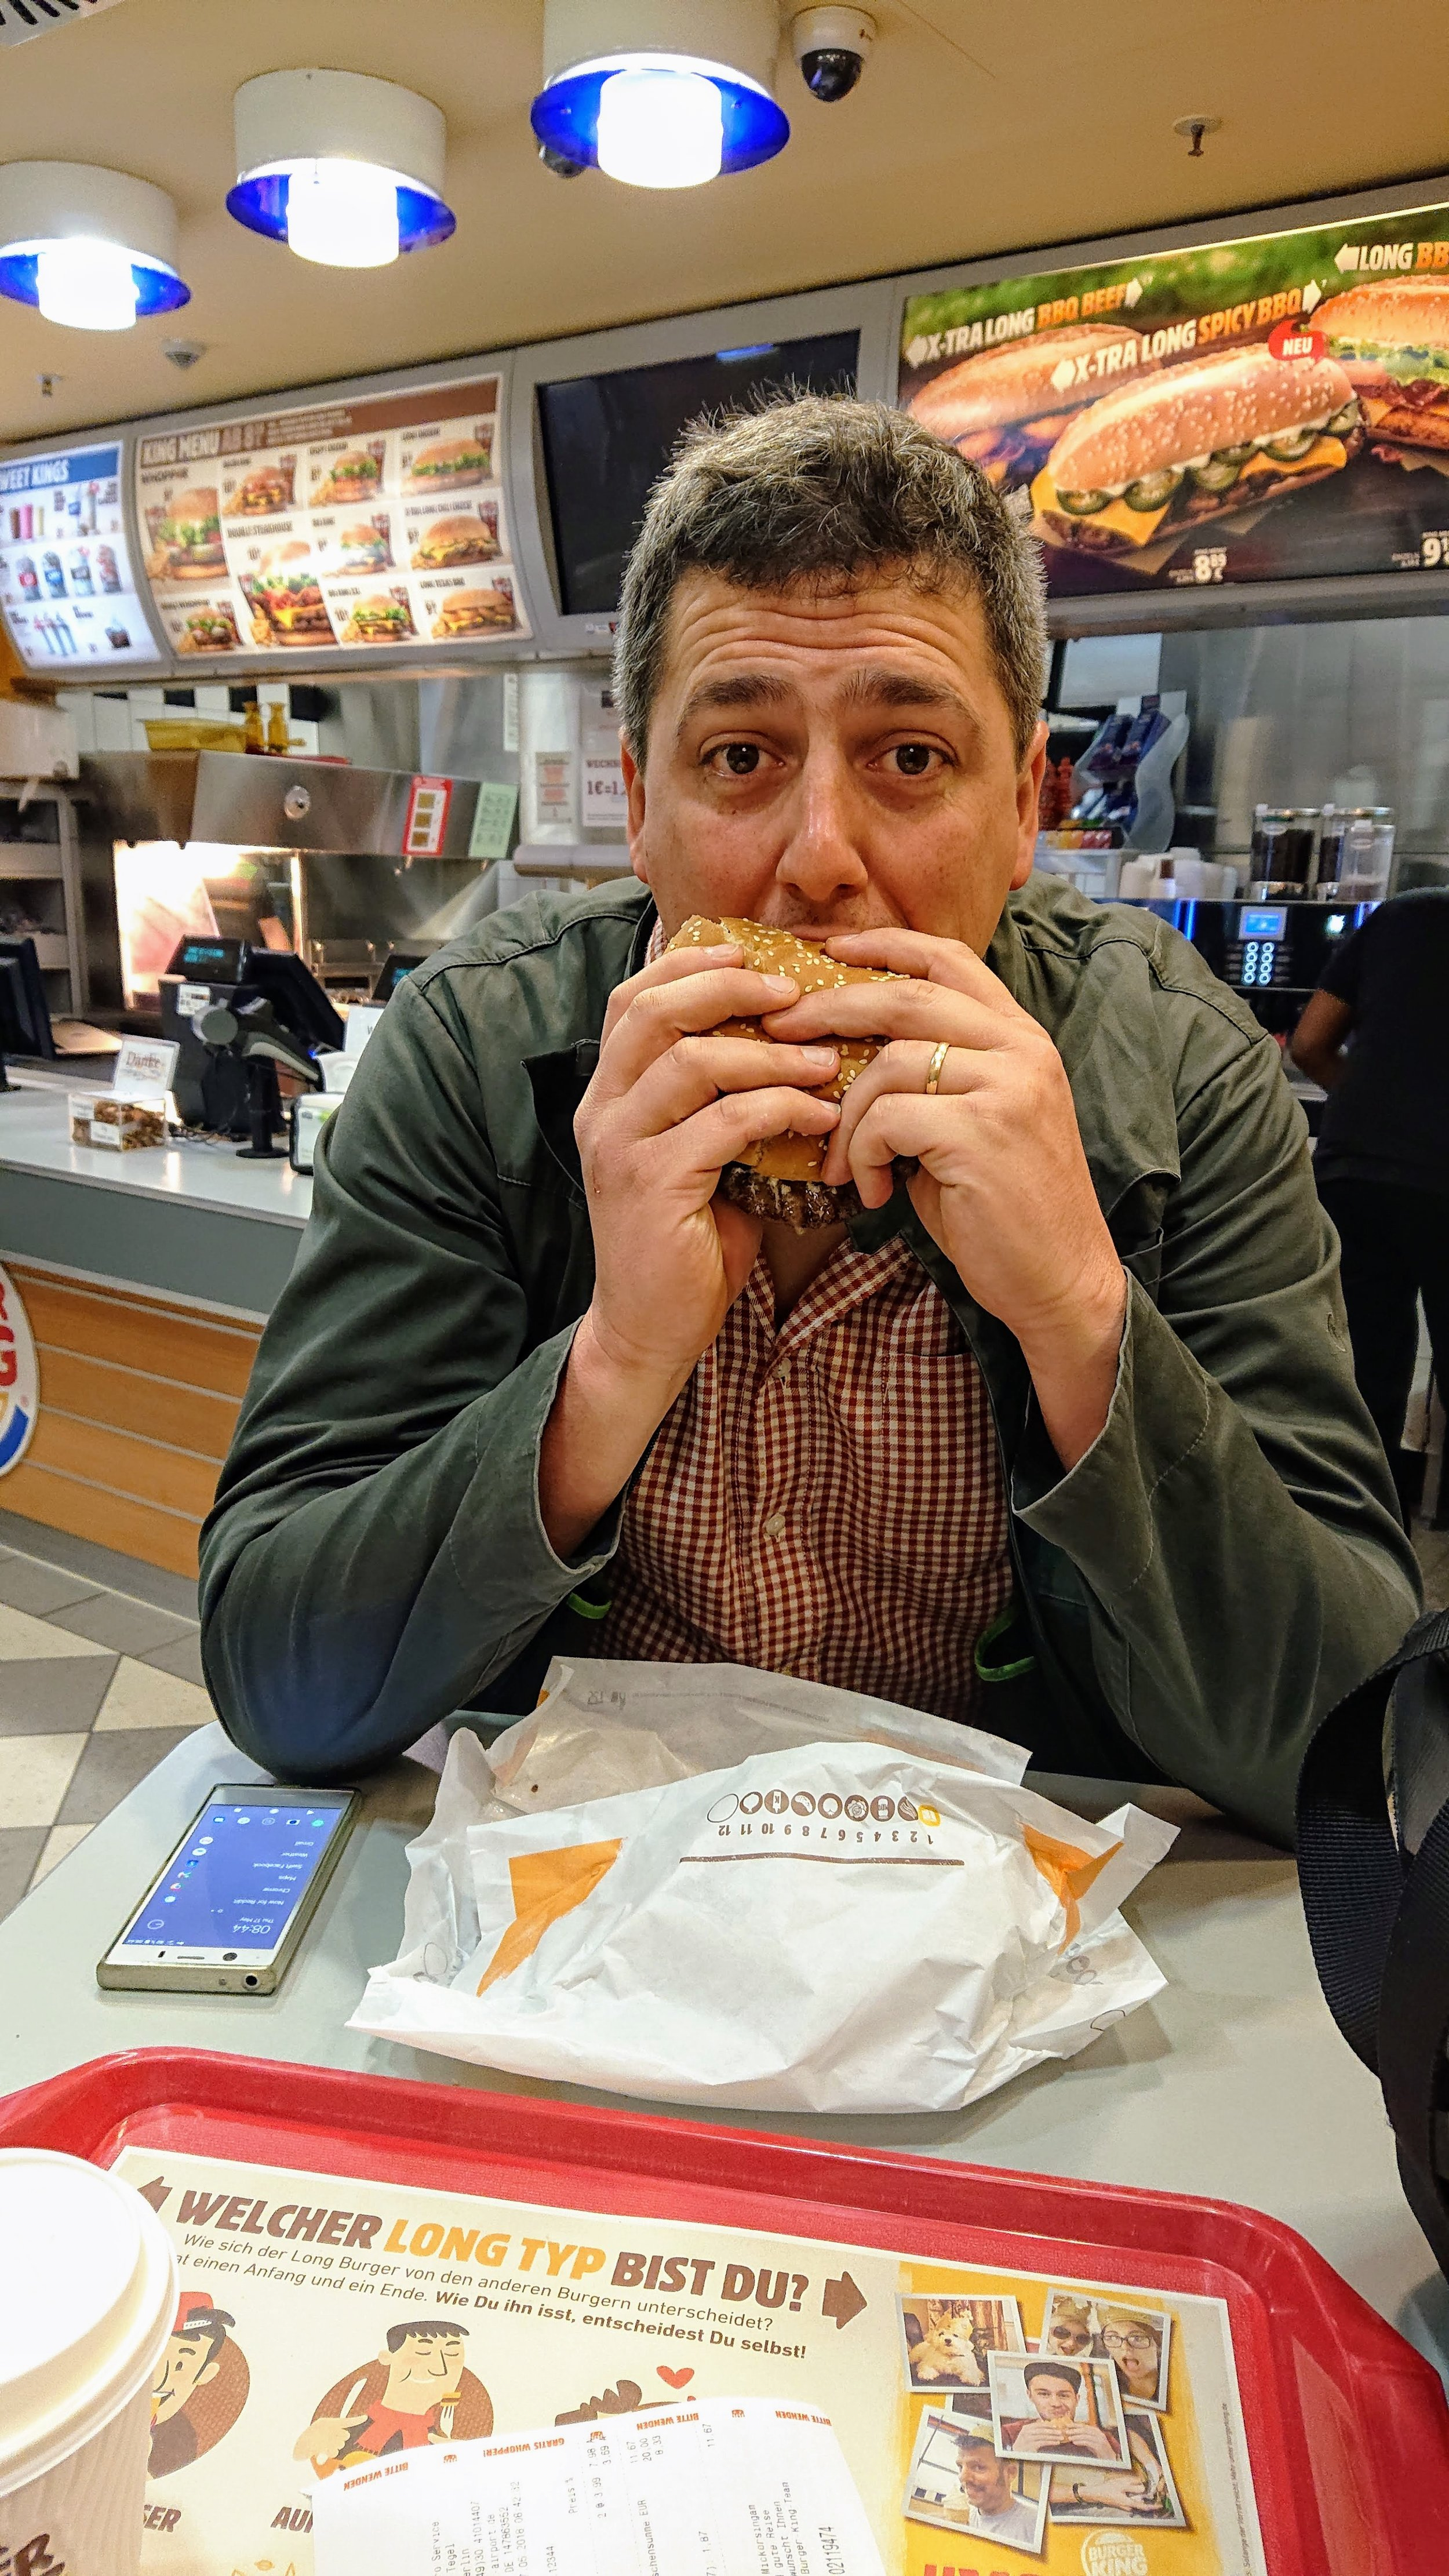 After experiencing such incompetence, the first meal of the honeymoon has to be Burger King's finest. Note the time on Neil's phone. Not our proudest moment, but we won't be apologising for it either.